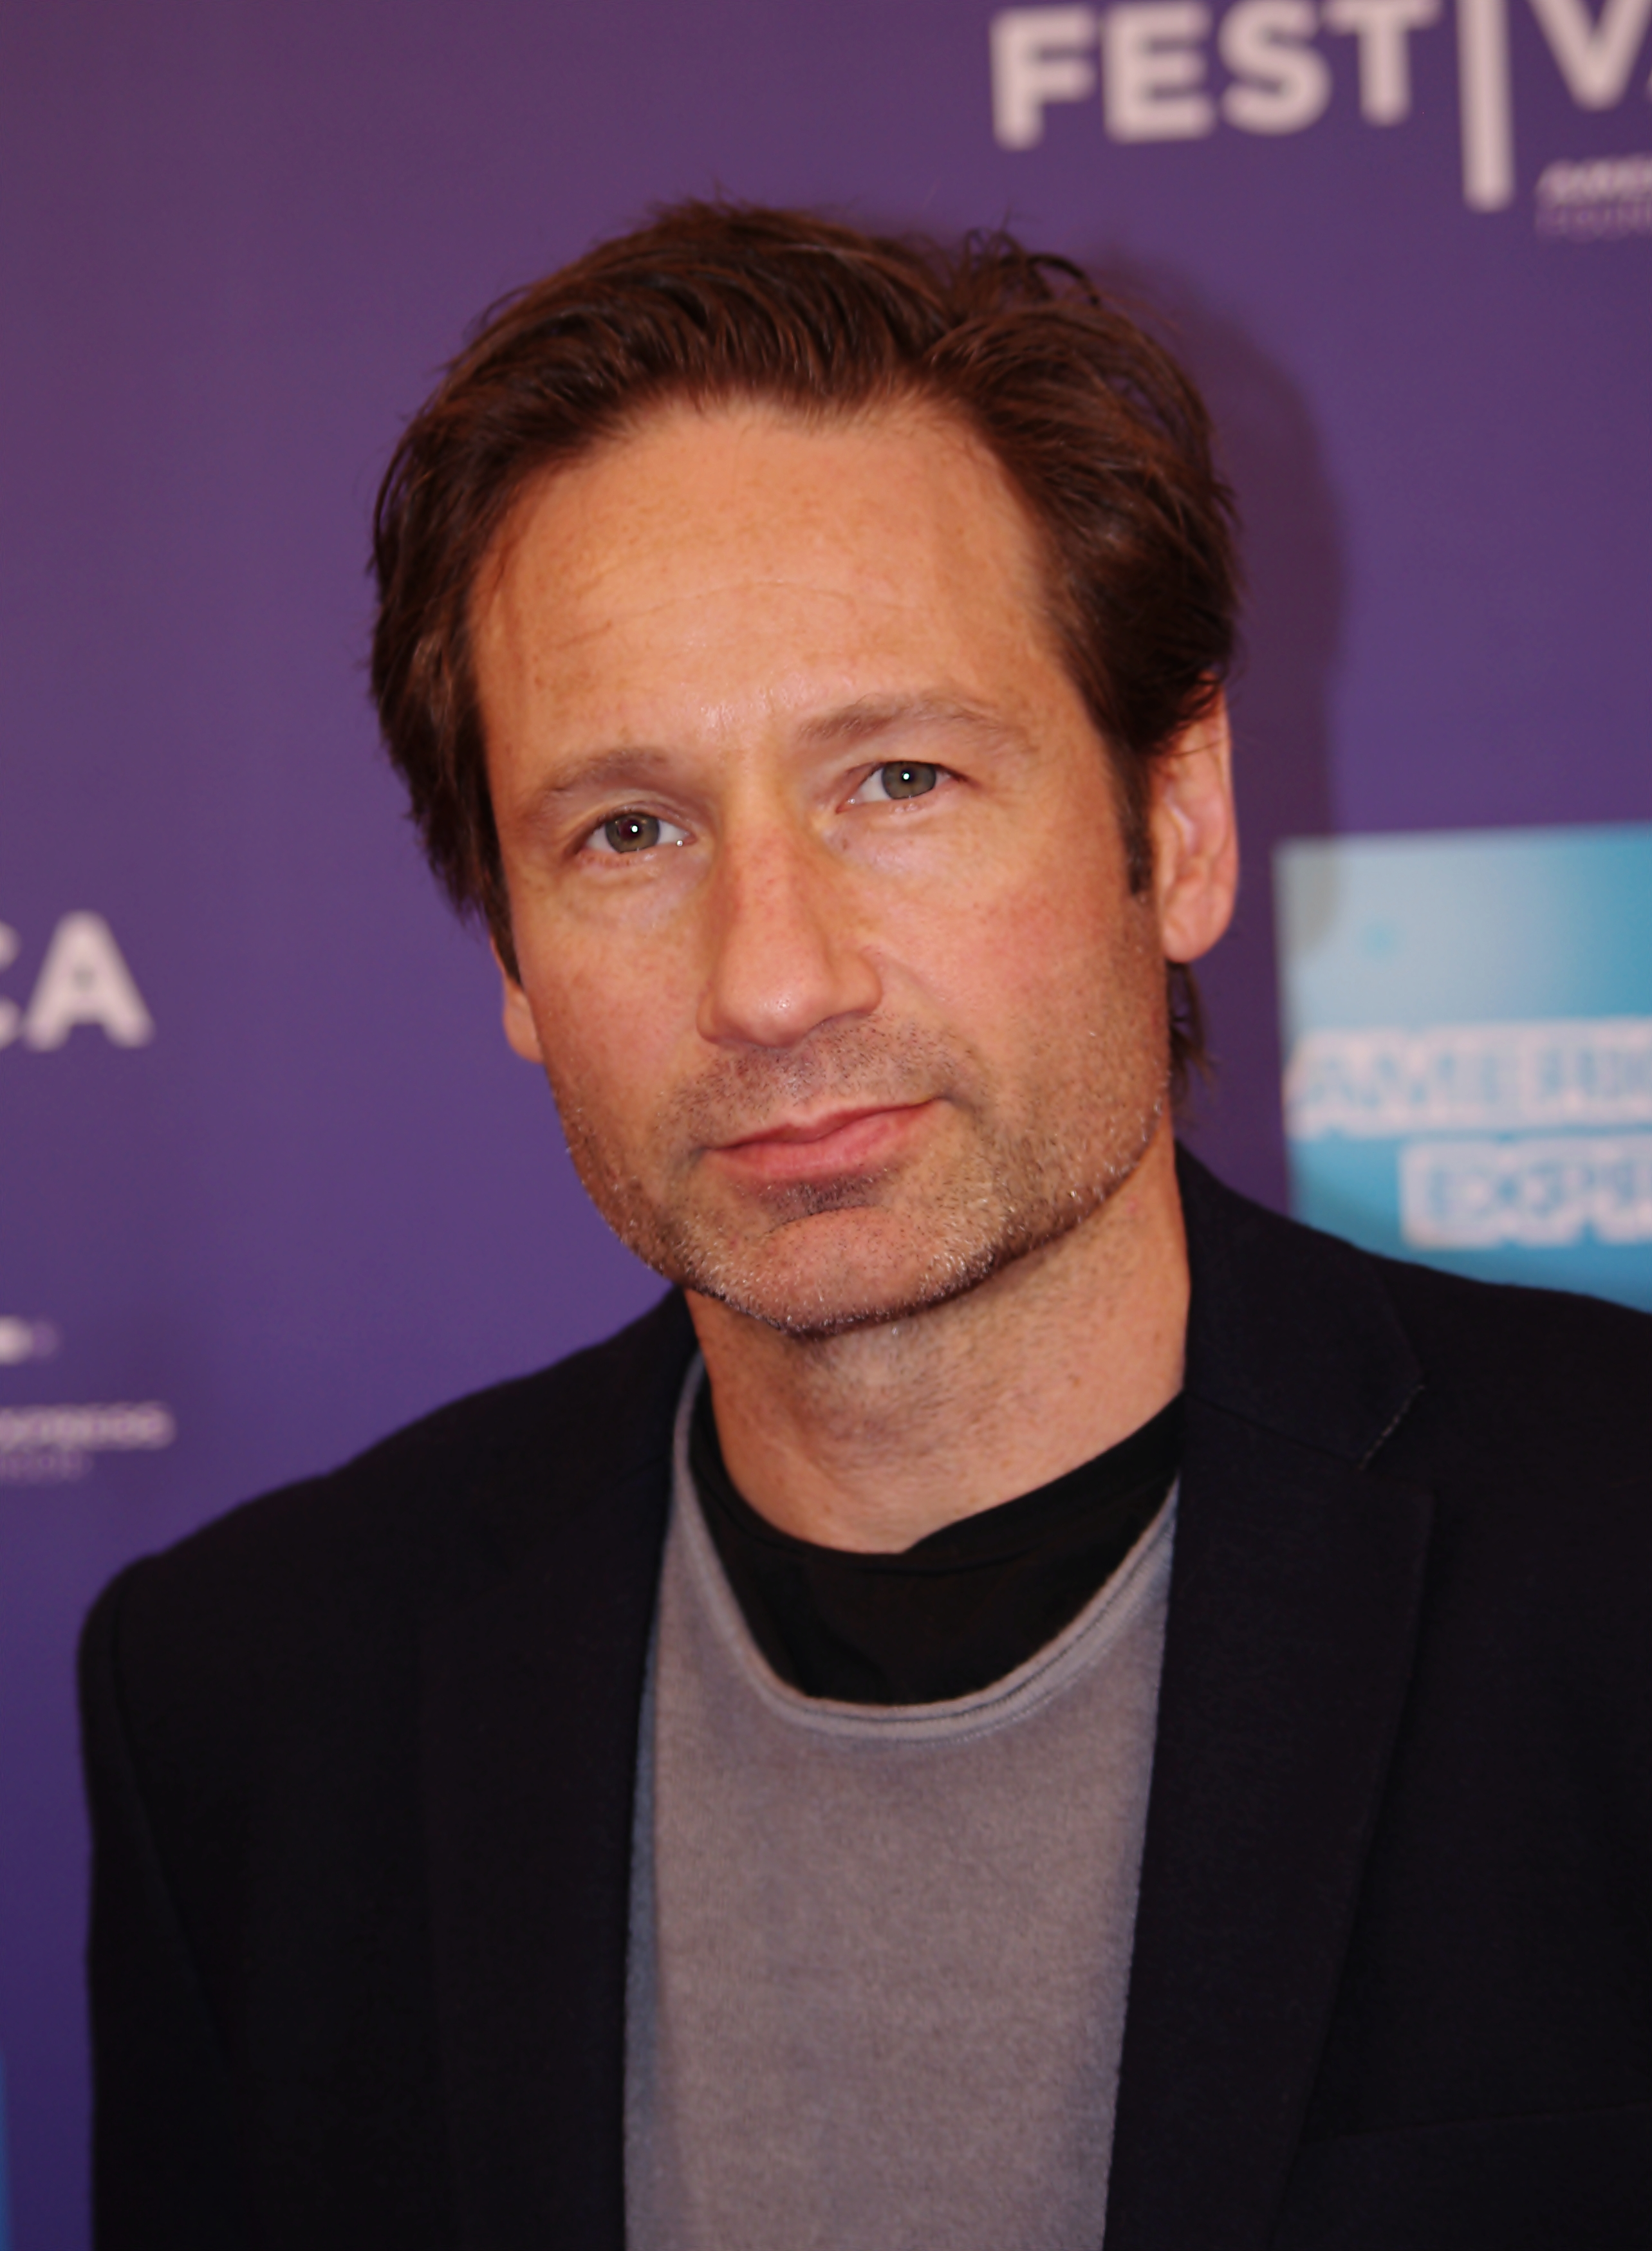 David Duchovny earned a  million dollar salary, leaving the net worth at 60 million in 2017